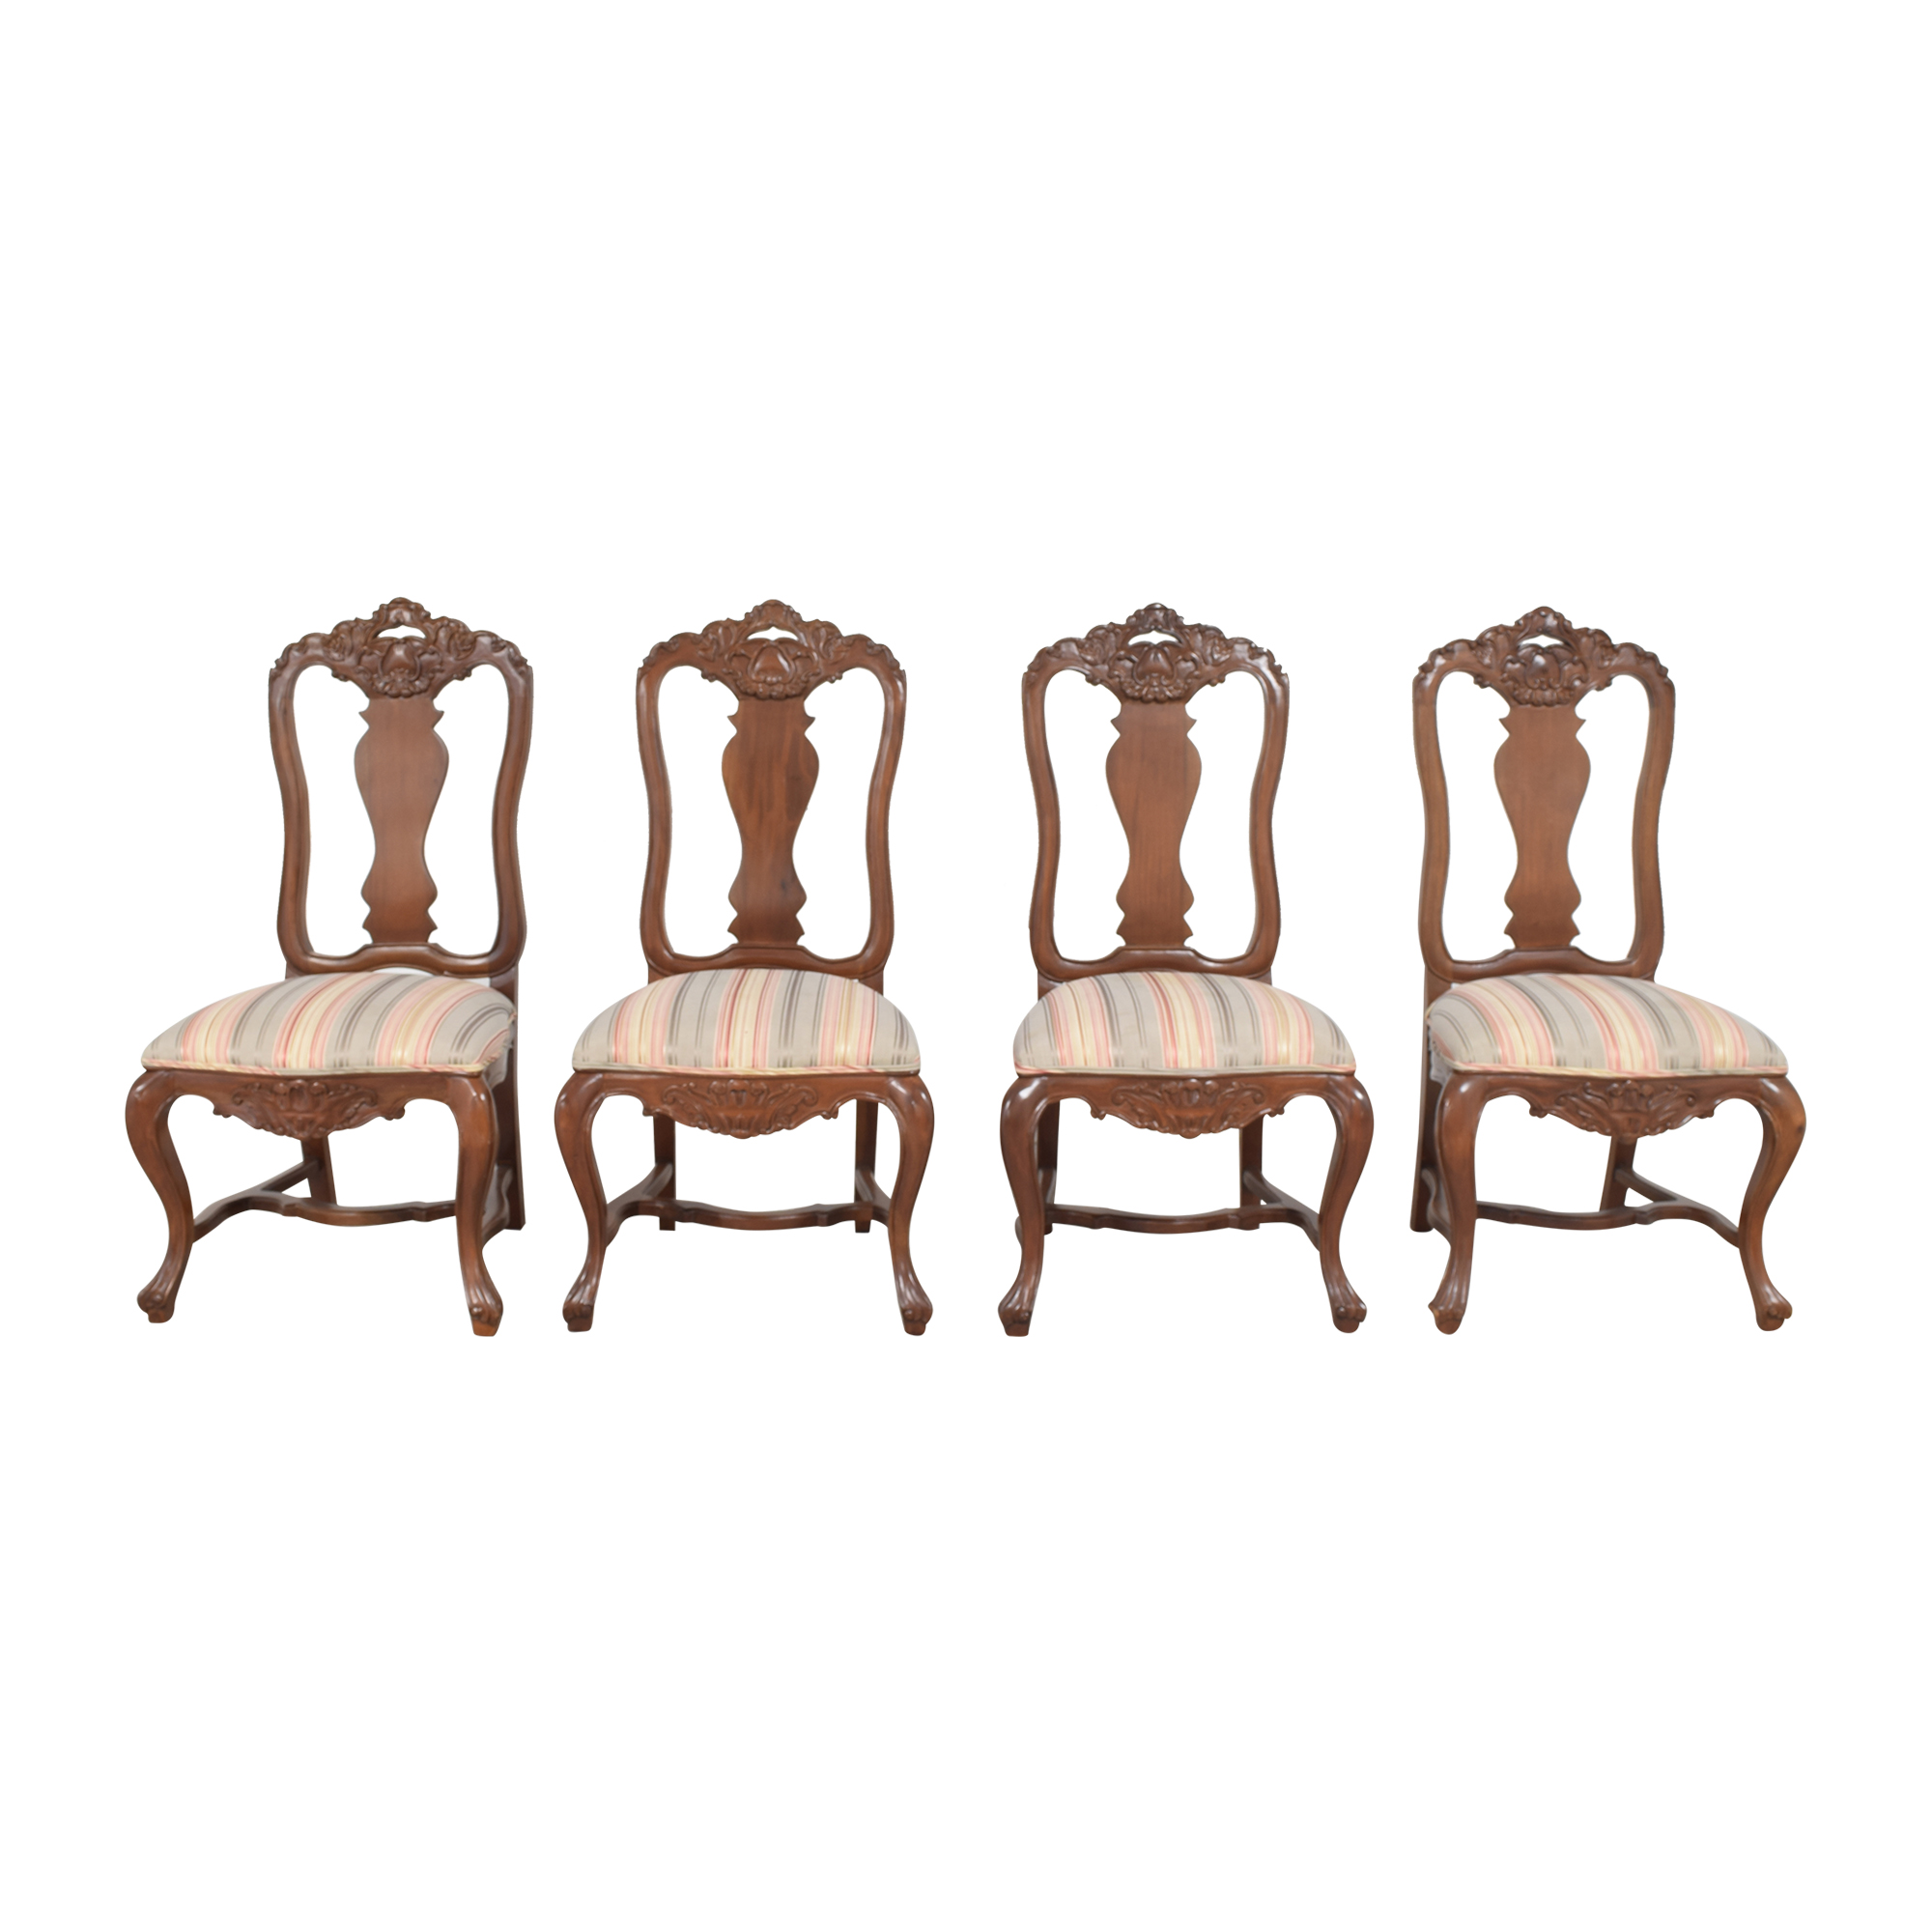 Andre Originals Andre Originals Dining Side Chairs dimensions